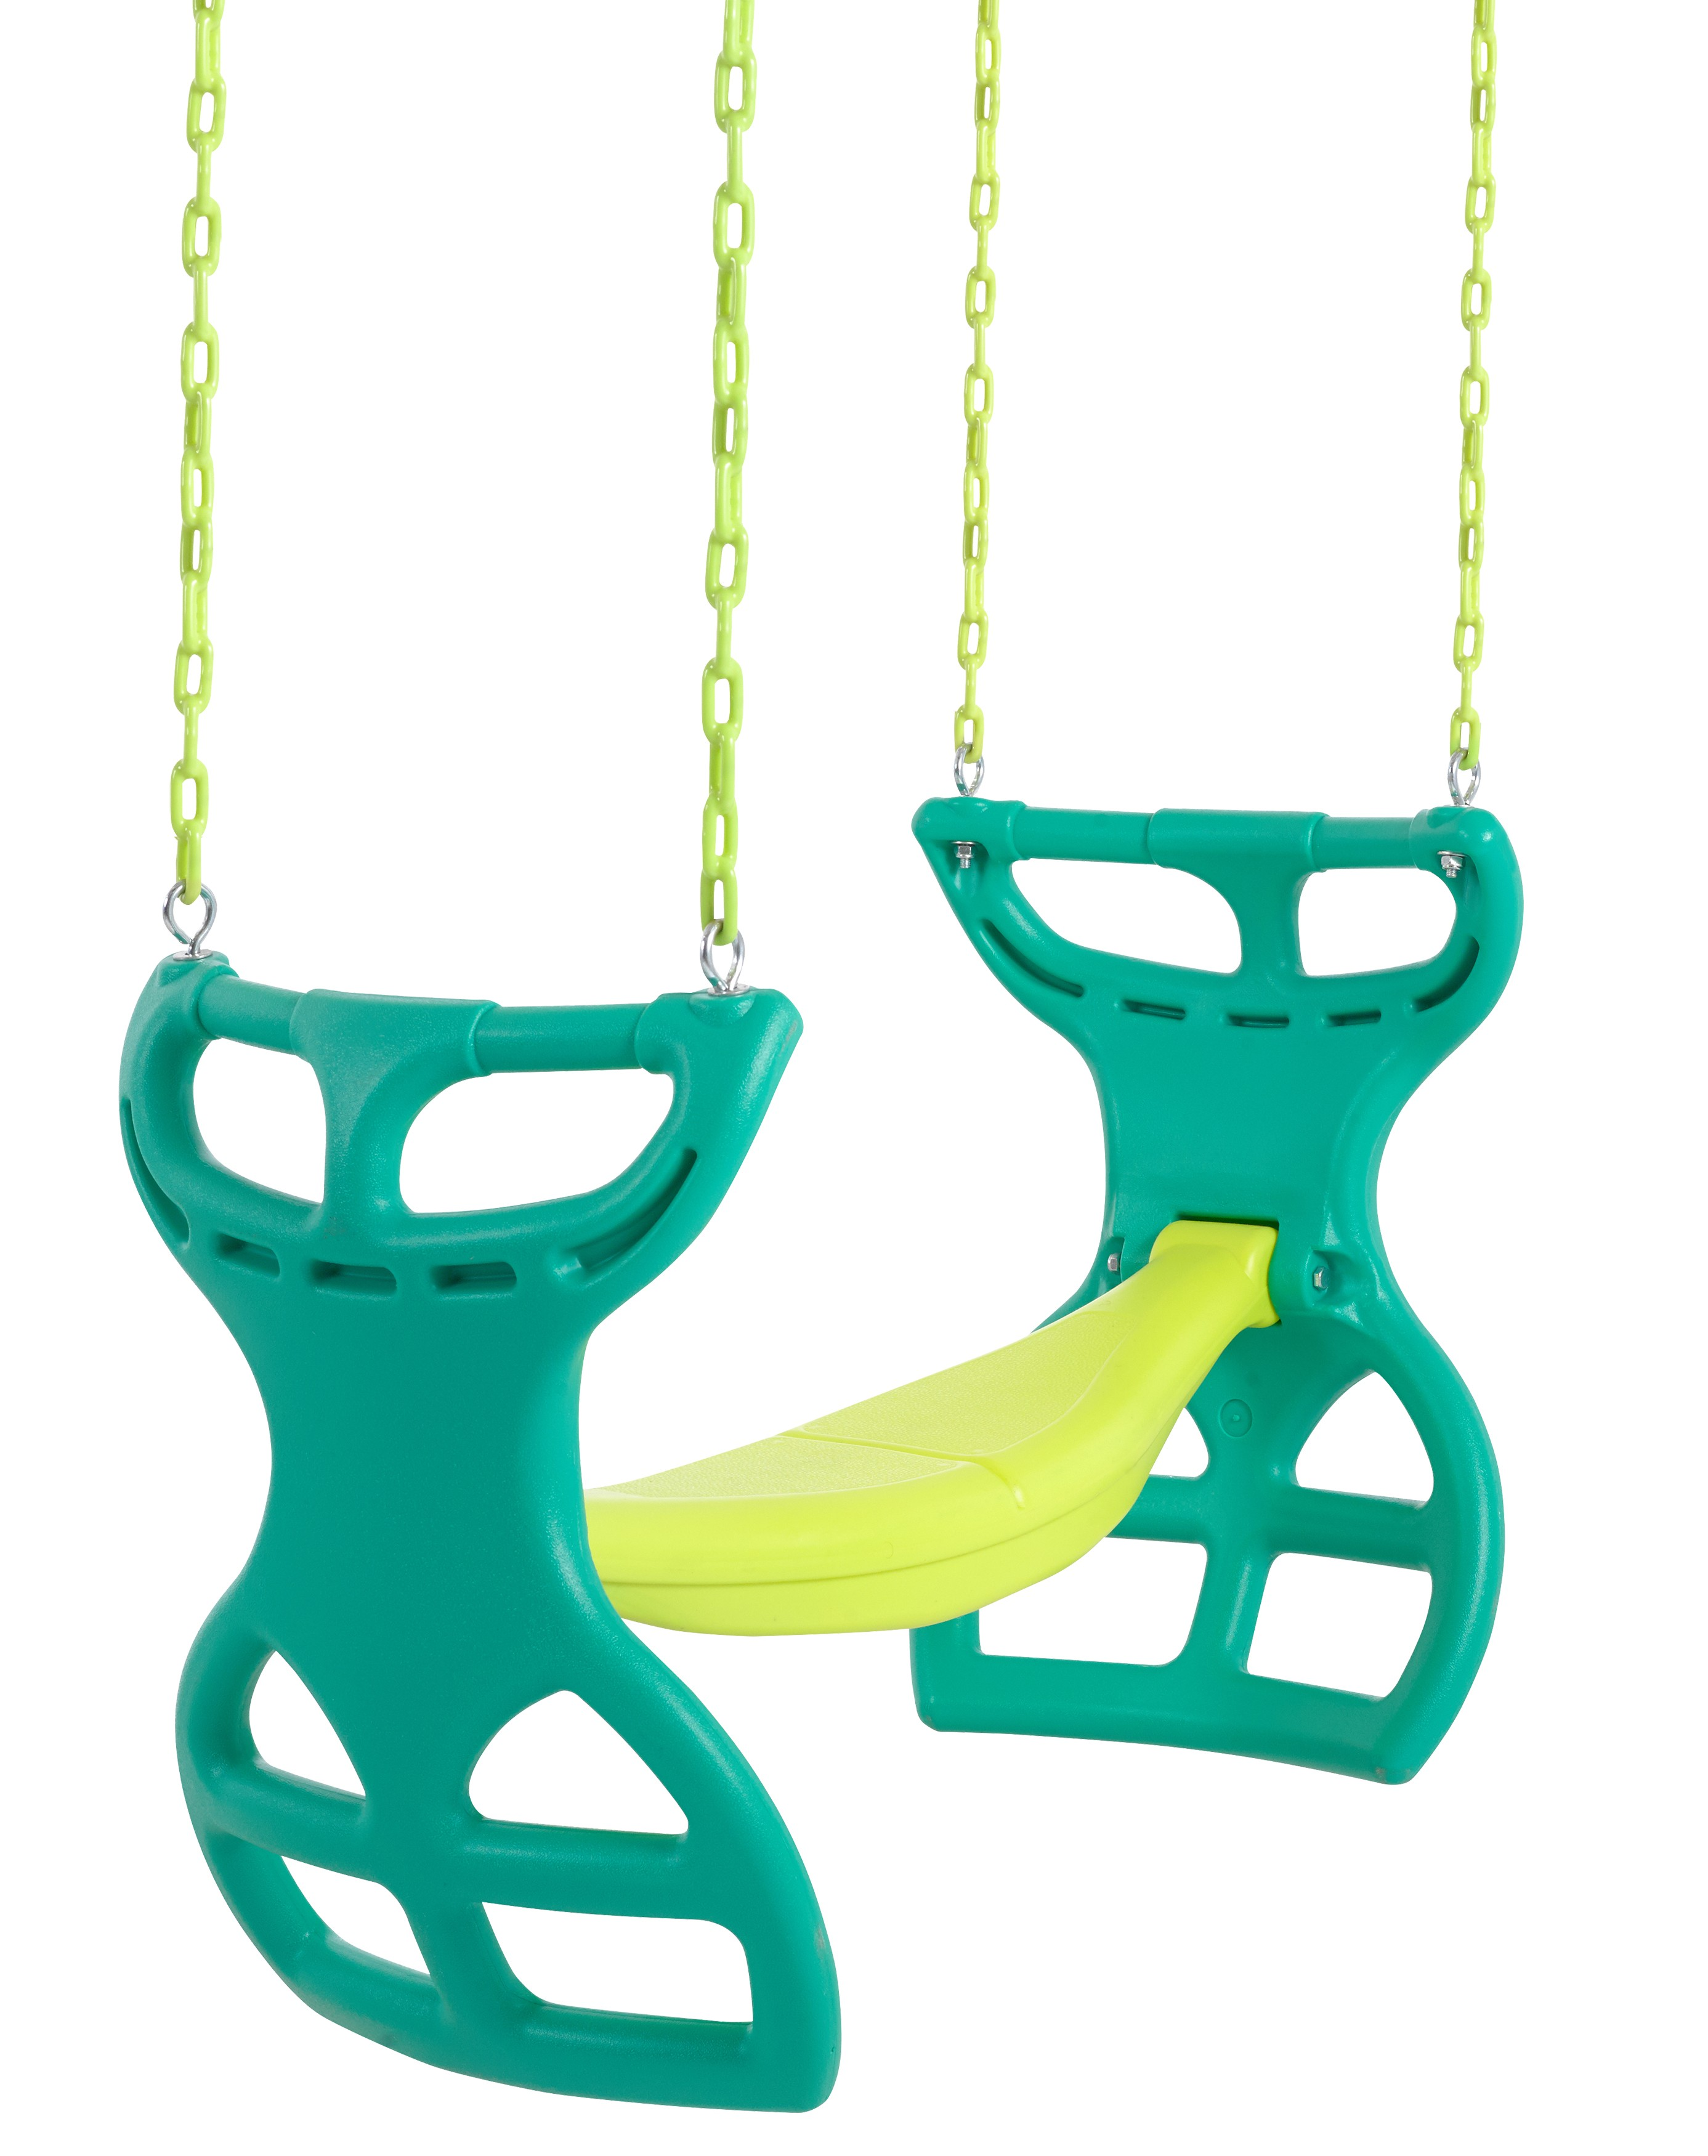 Swingan - Glider Swing Seat - Two Kids Seater | Playground Sets & Accessories for Children - Green & Yellow